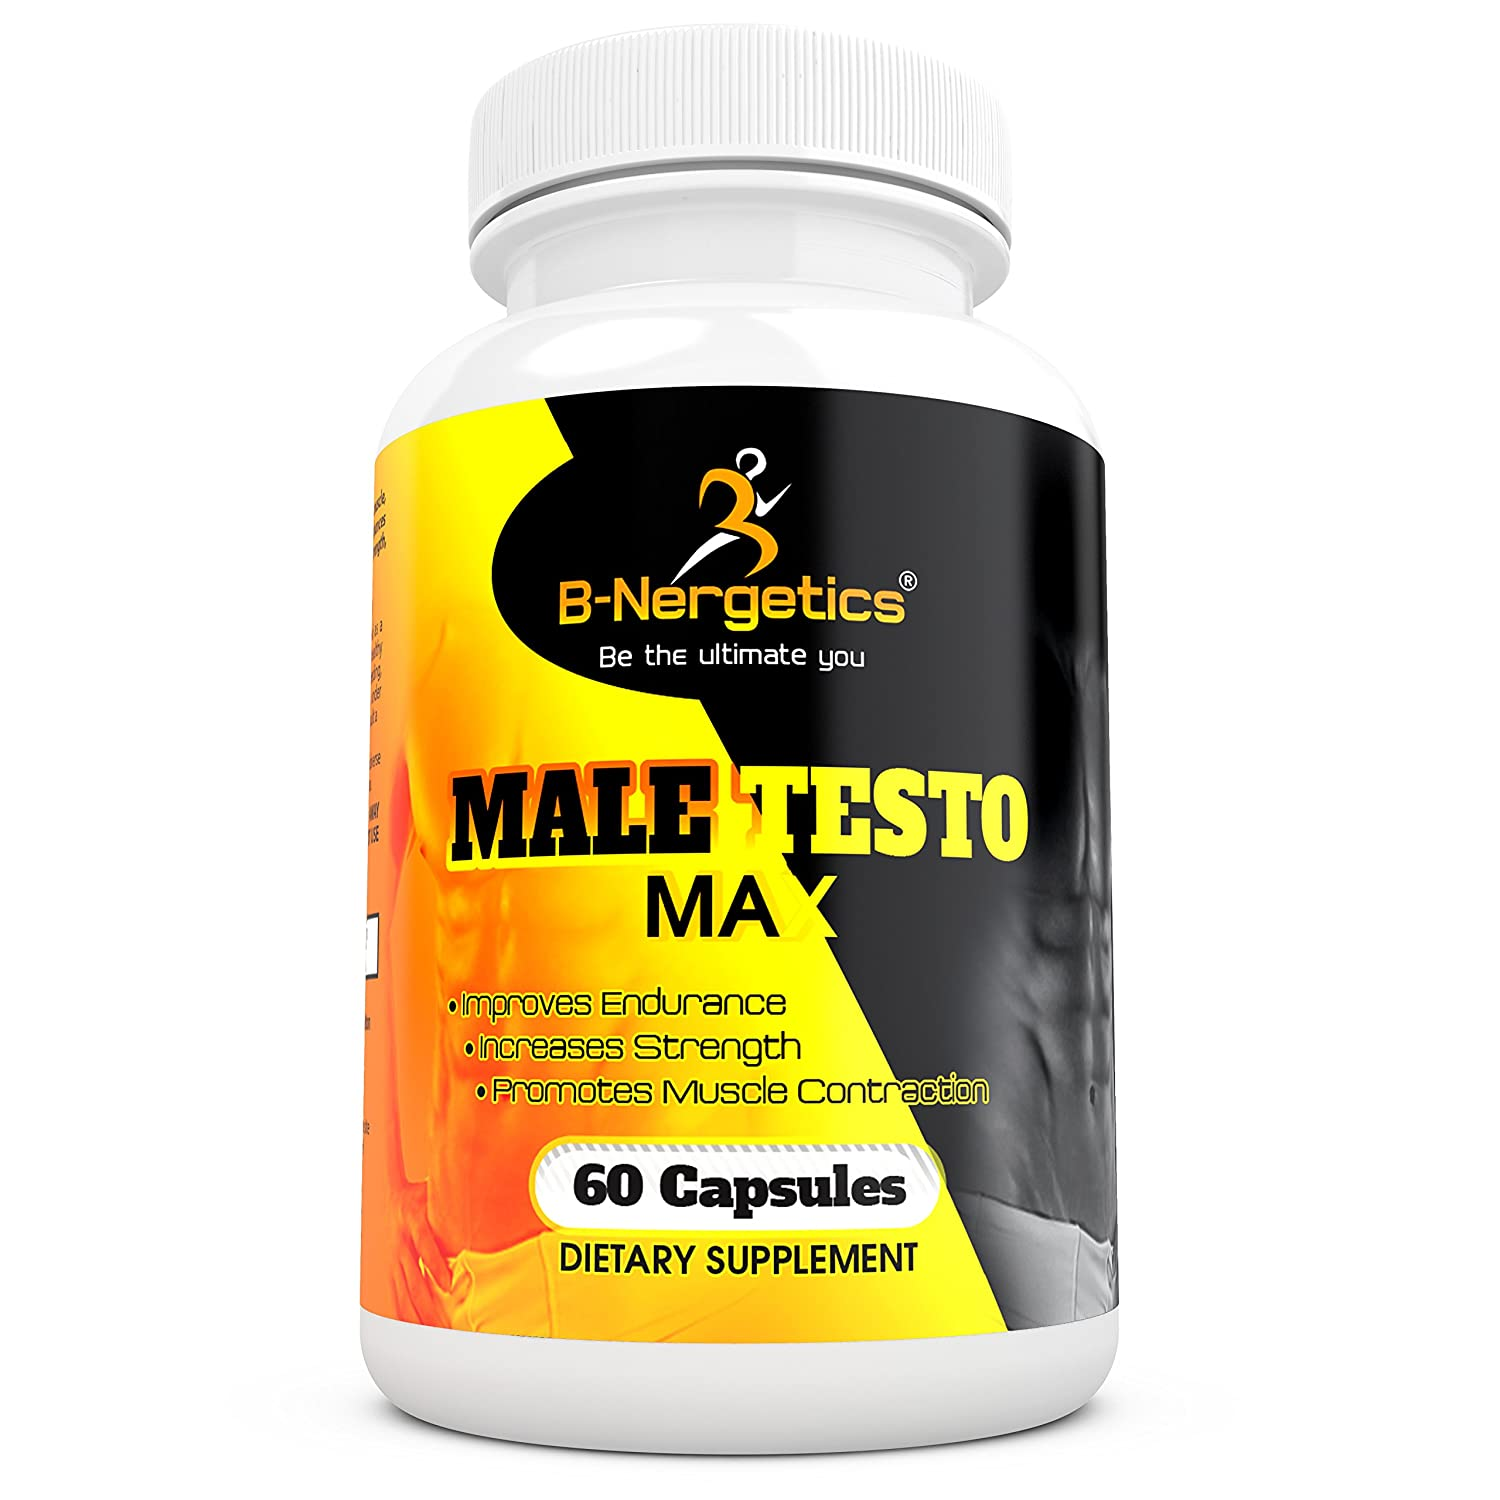 What are best weight loss supplements